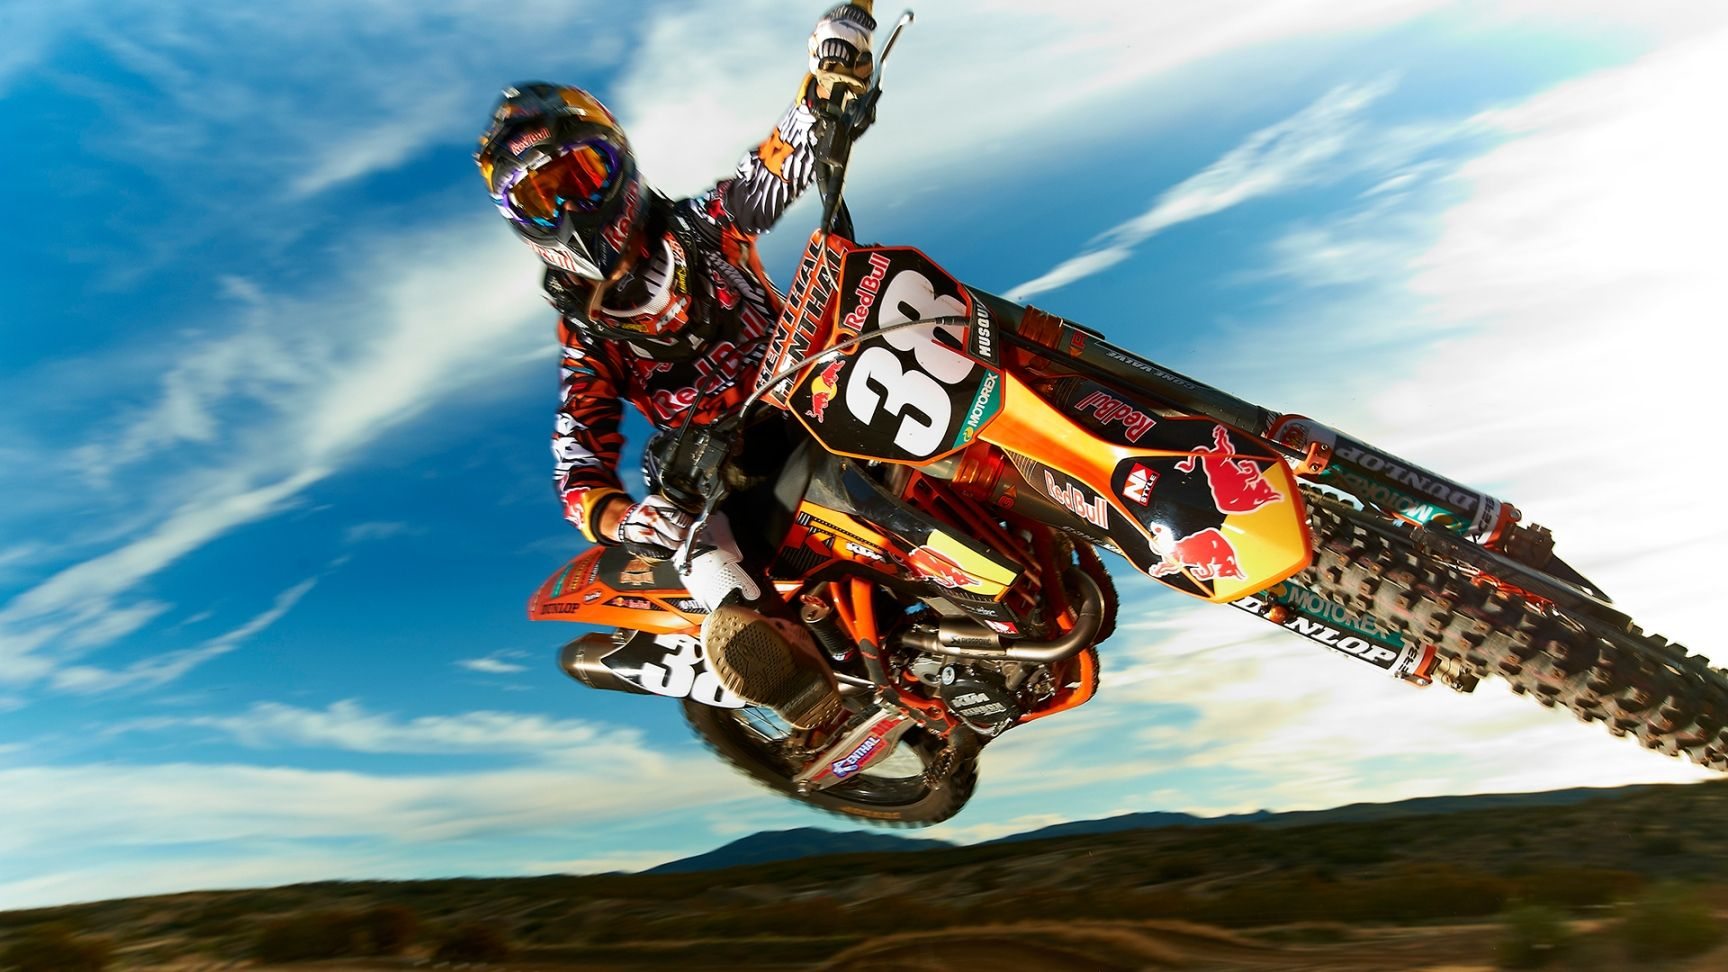 Marvin Musquin Dirt Bike Jump Really Awesome Cool Dirt Bikes Freestyle Motocross Motocross